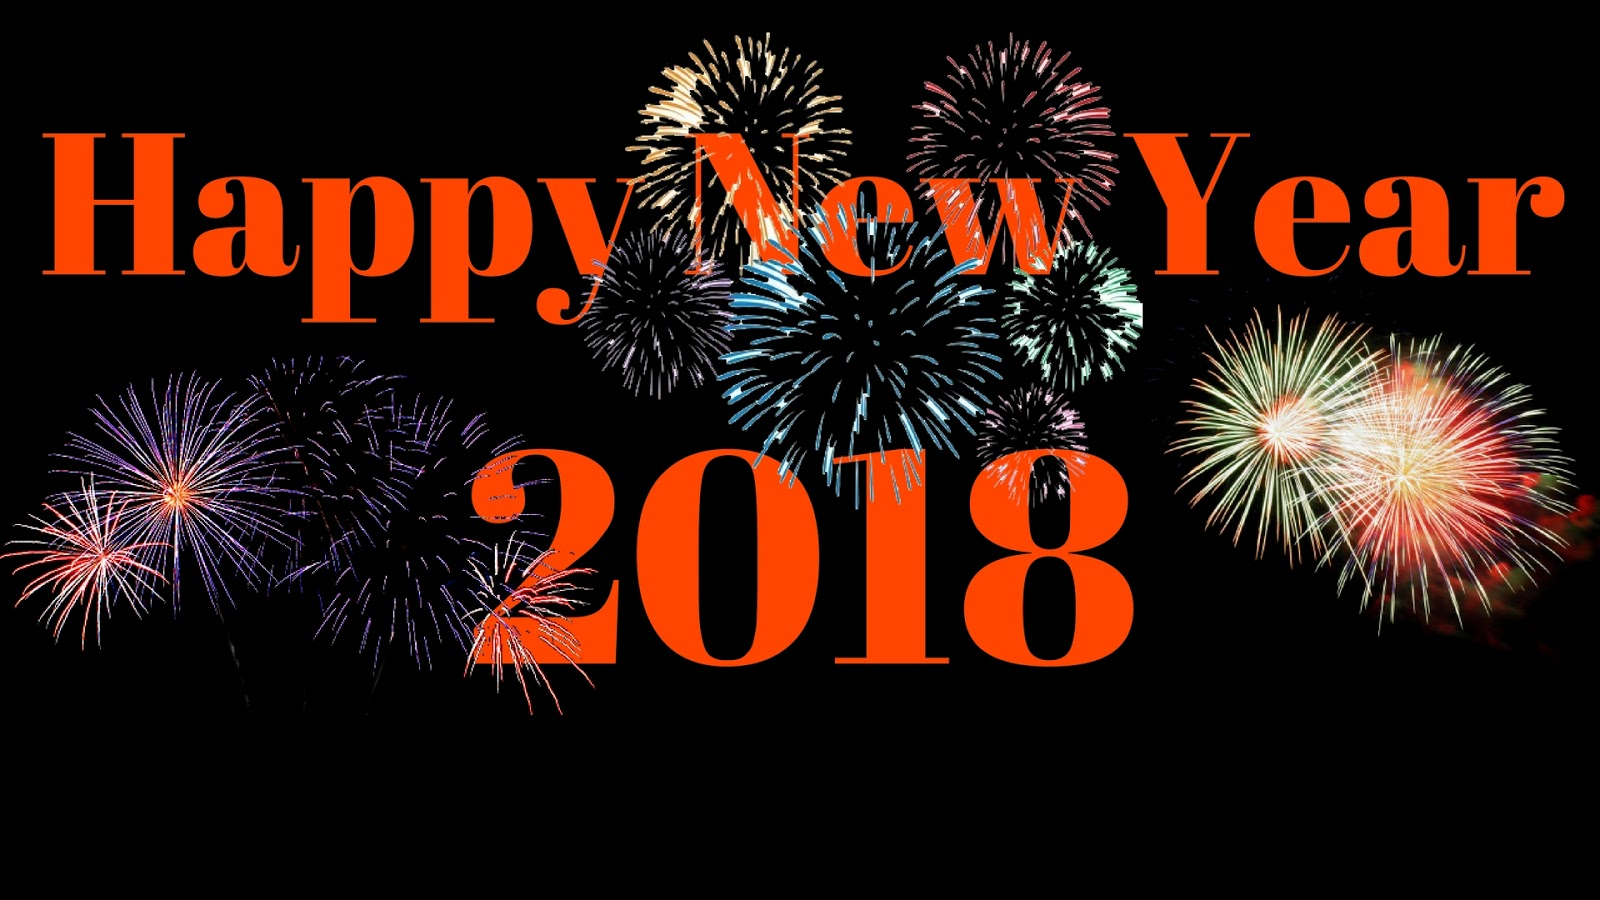 Happy New Year 2018 HD Wallpaper 4 With Fireworks Awesome Black Background And Orange Text